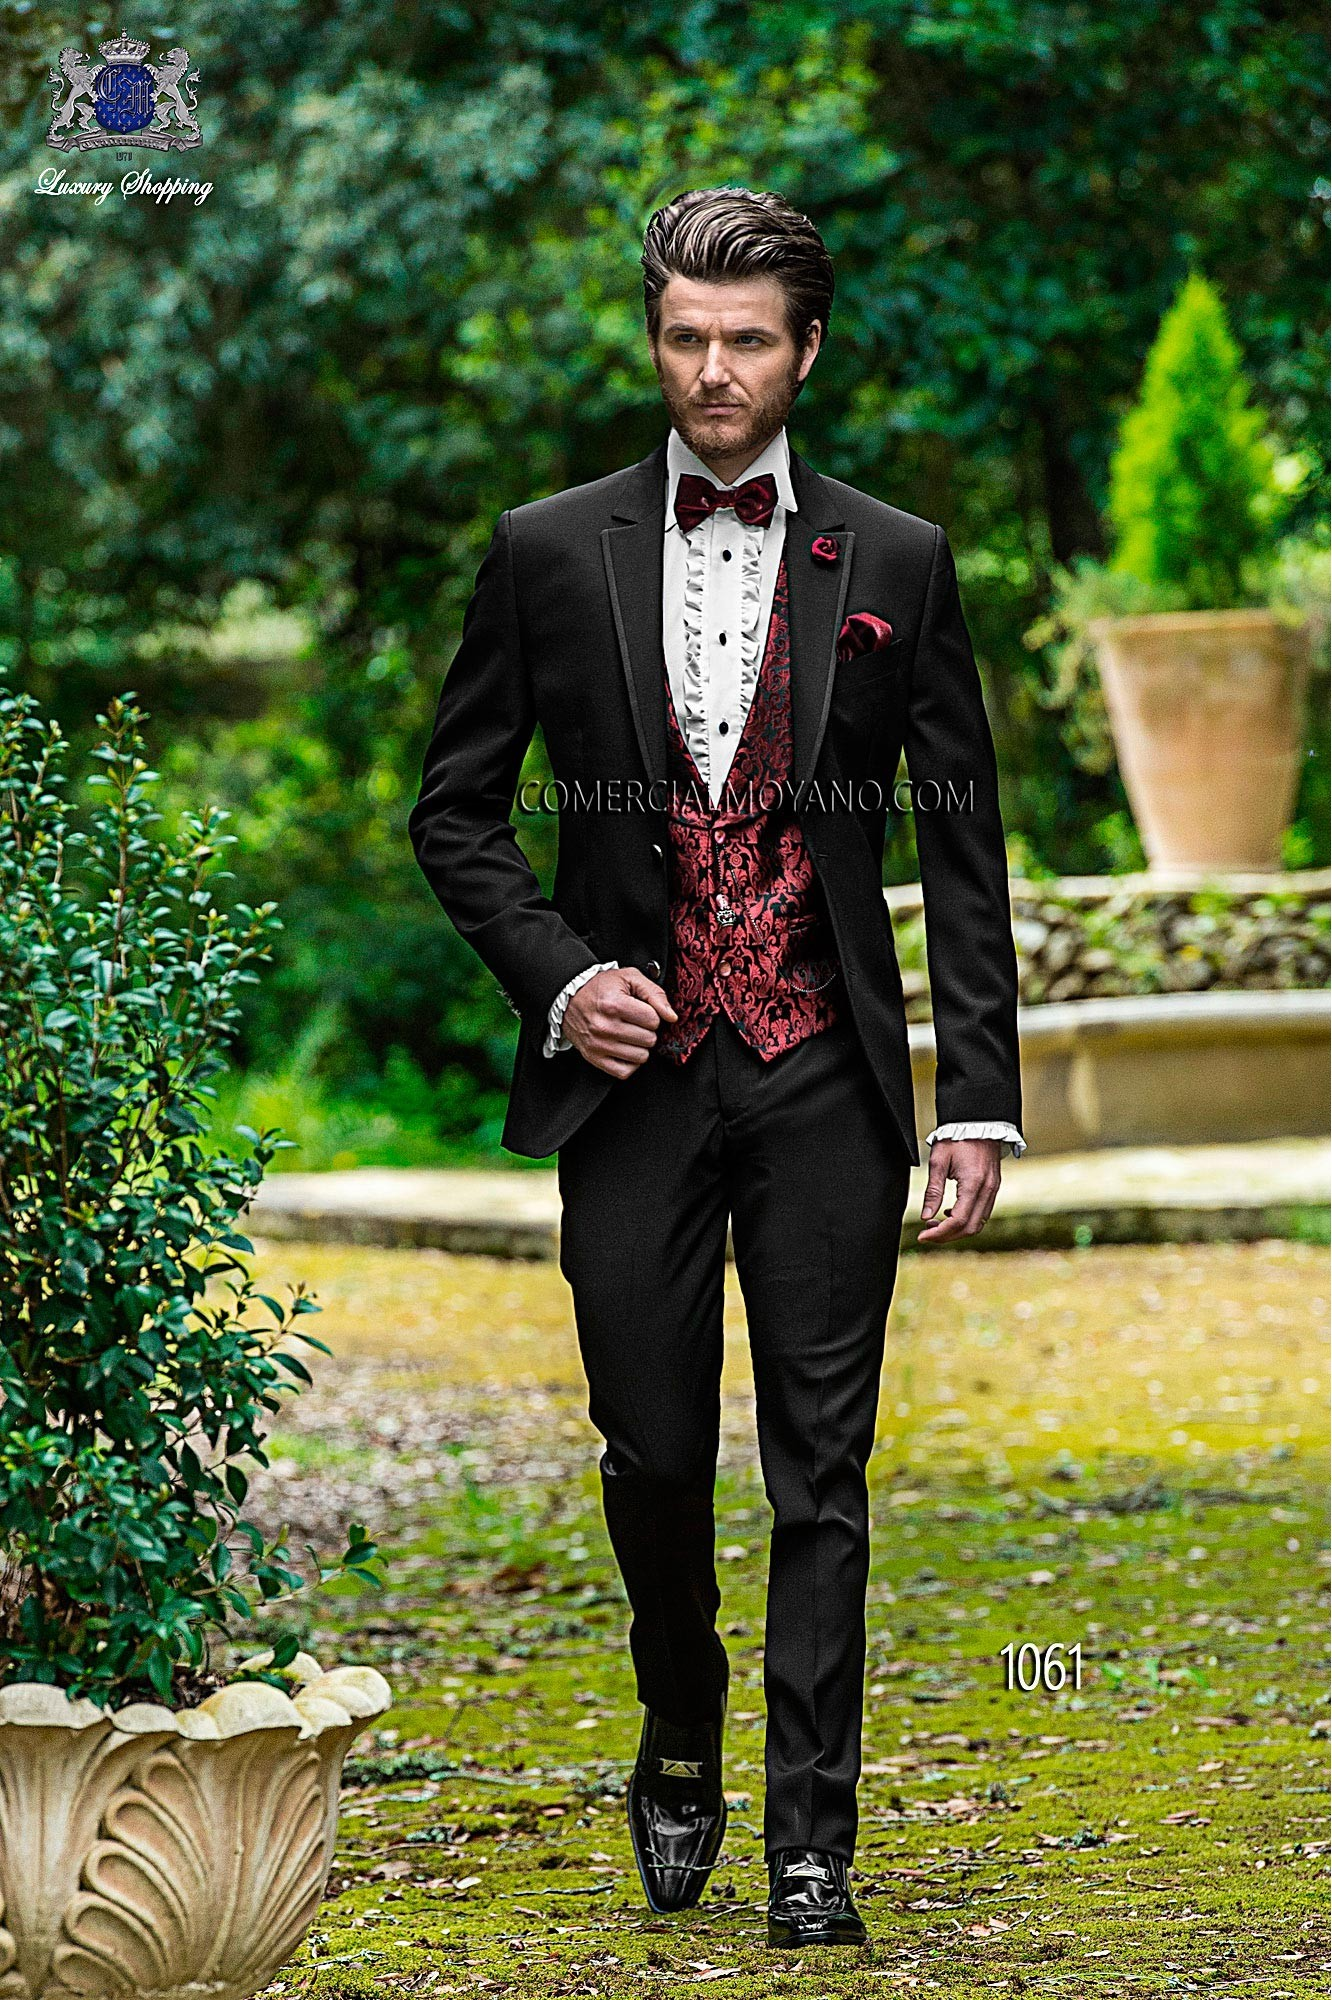 Fashion black men wedding suit model 1061 Ottavio Nuccio Gala